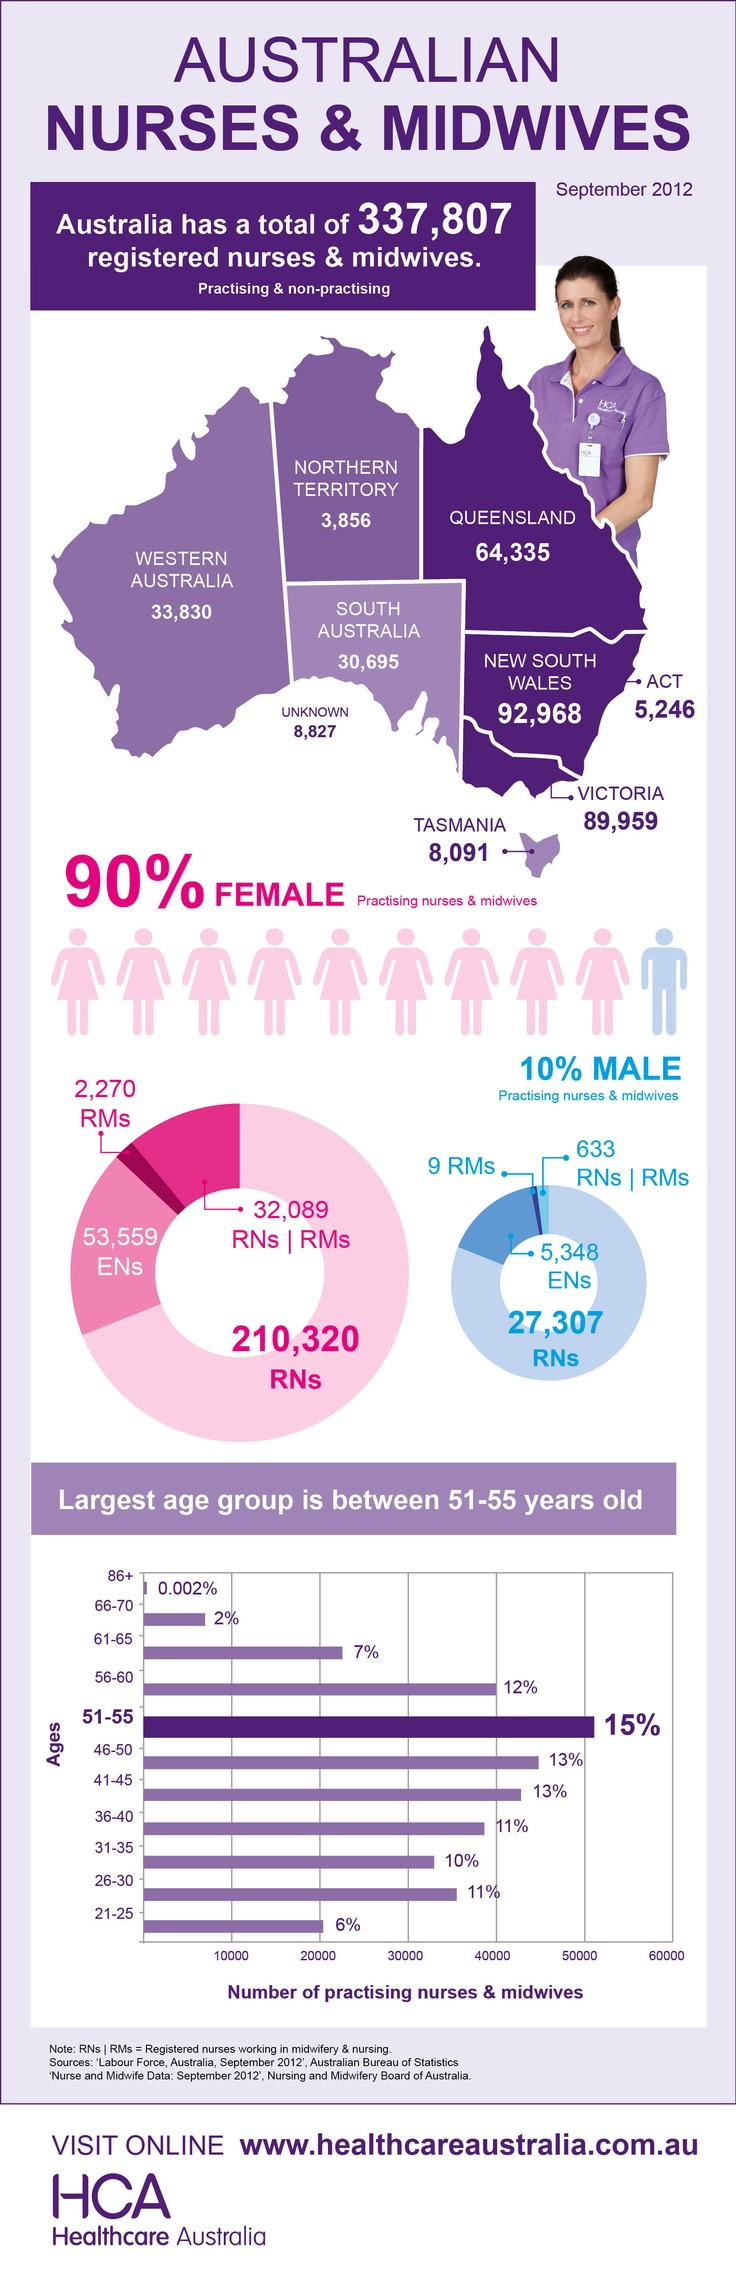 Number, gender & age of Australian nurses & midwives.